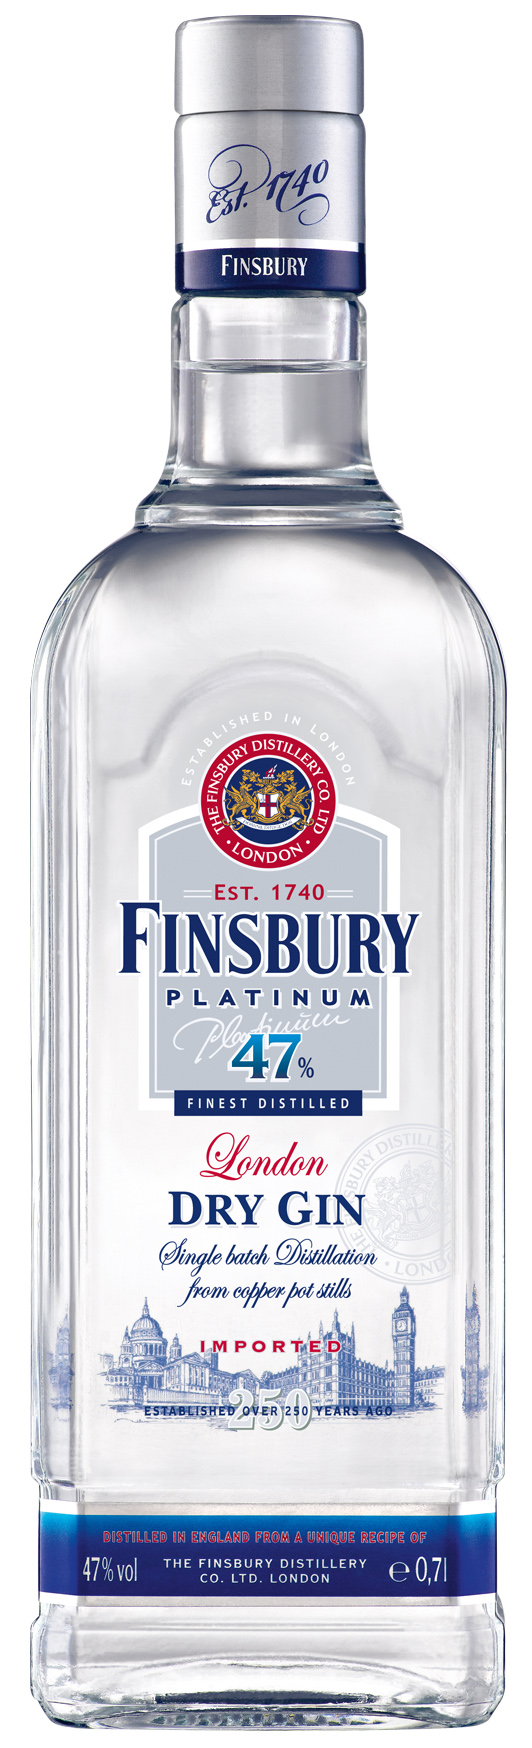 Finsbury Platinum London Dry Gin 47% 0,7 l